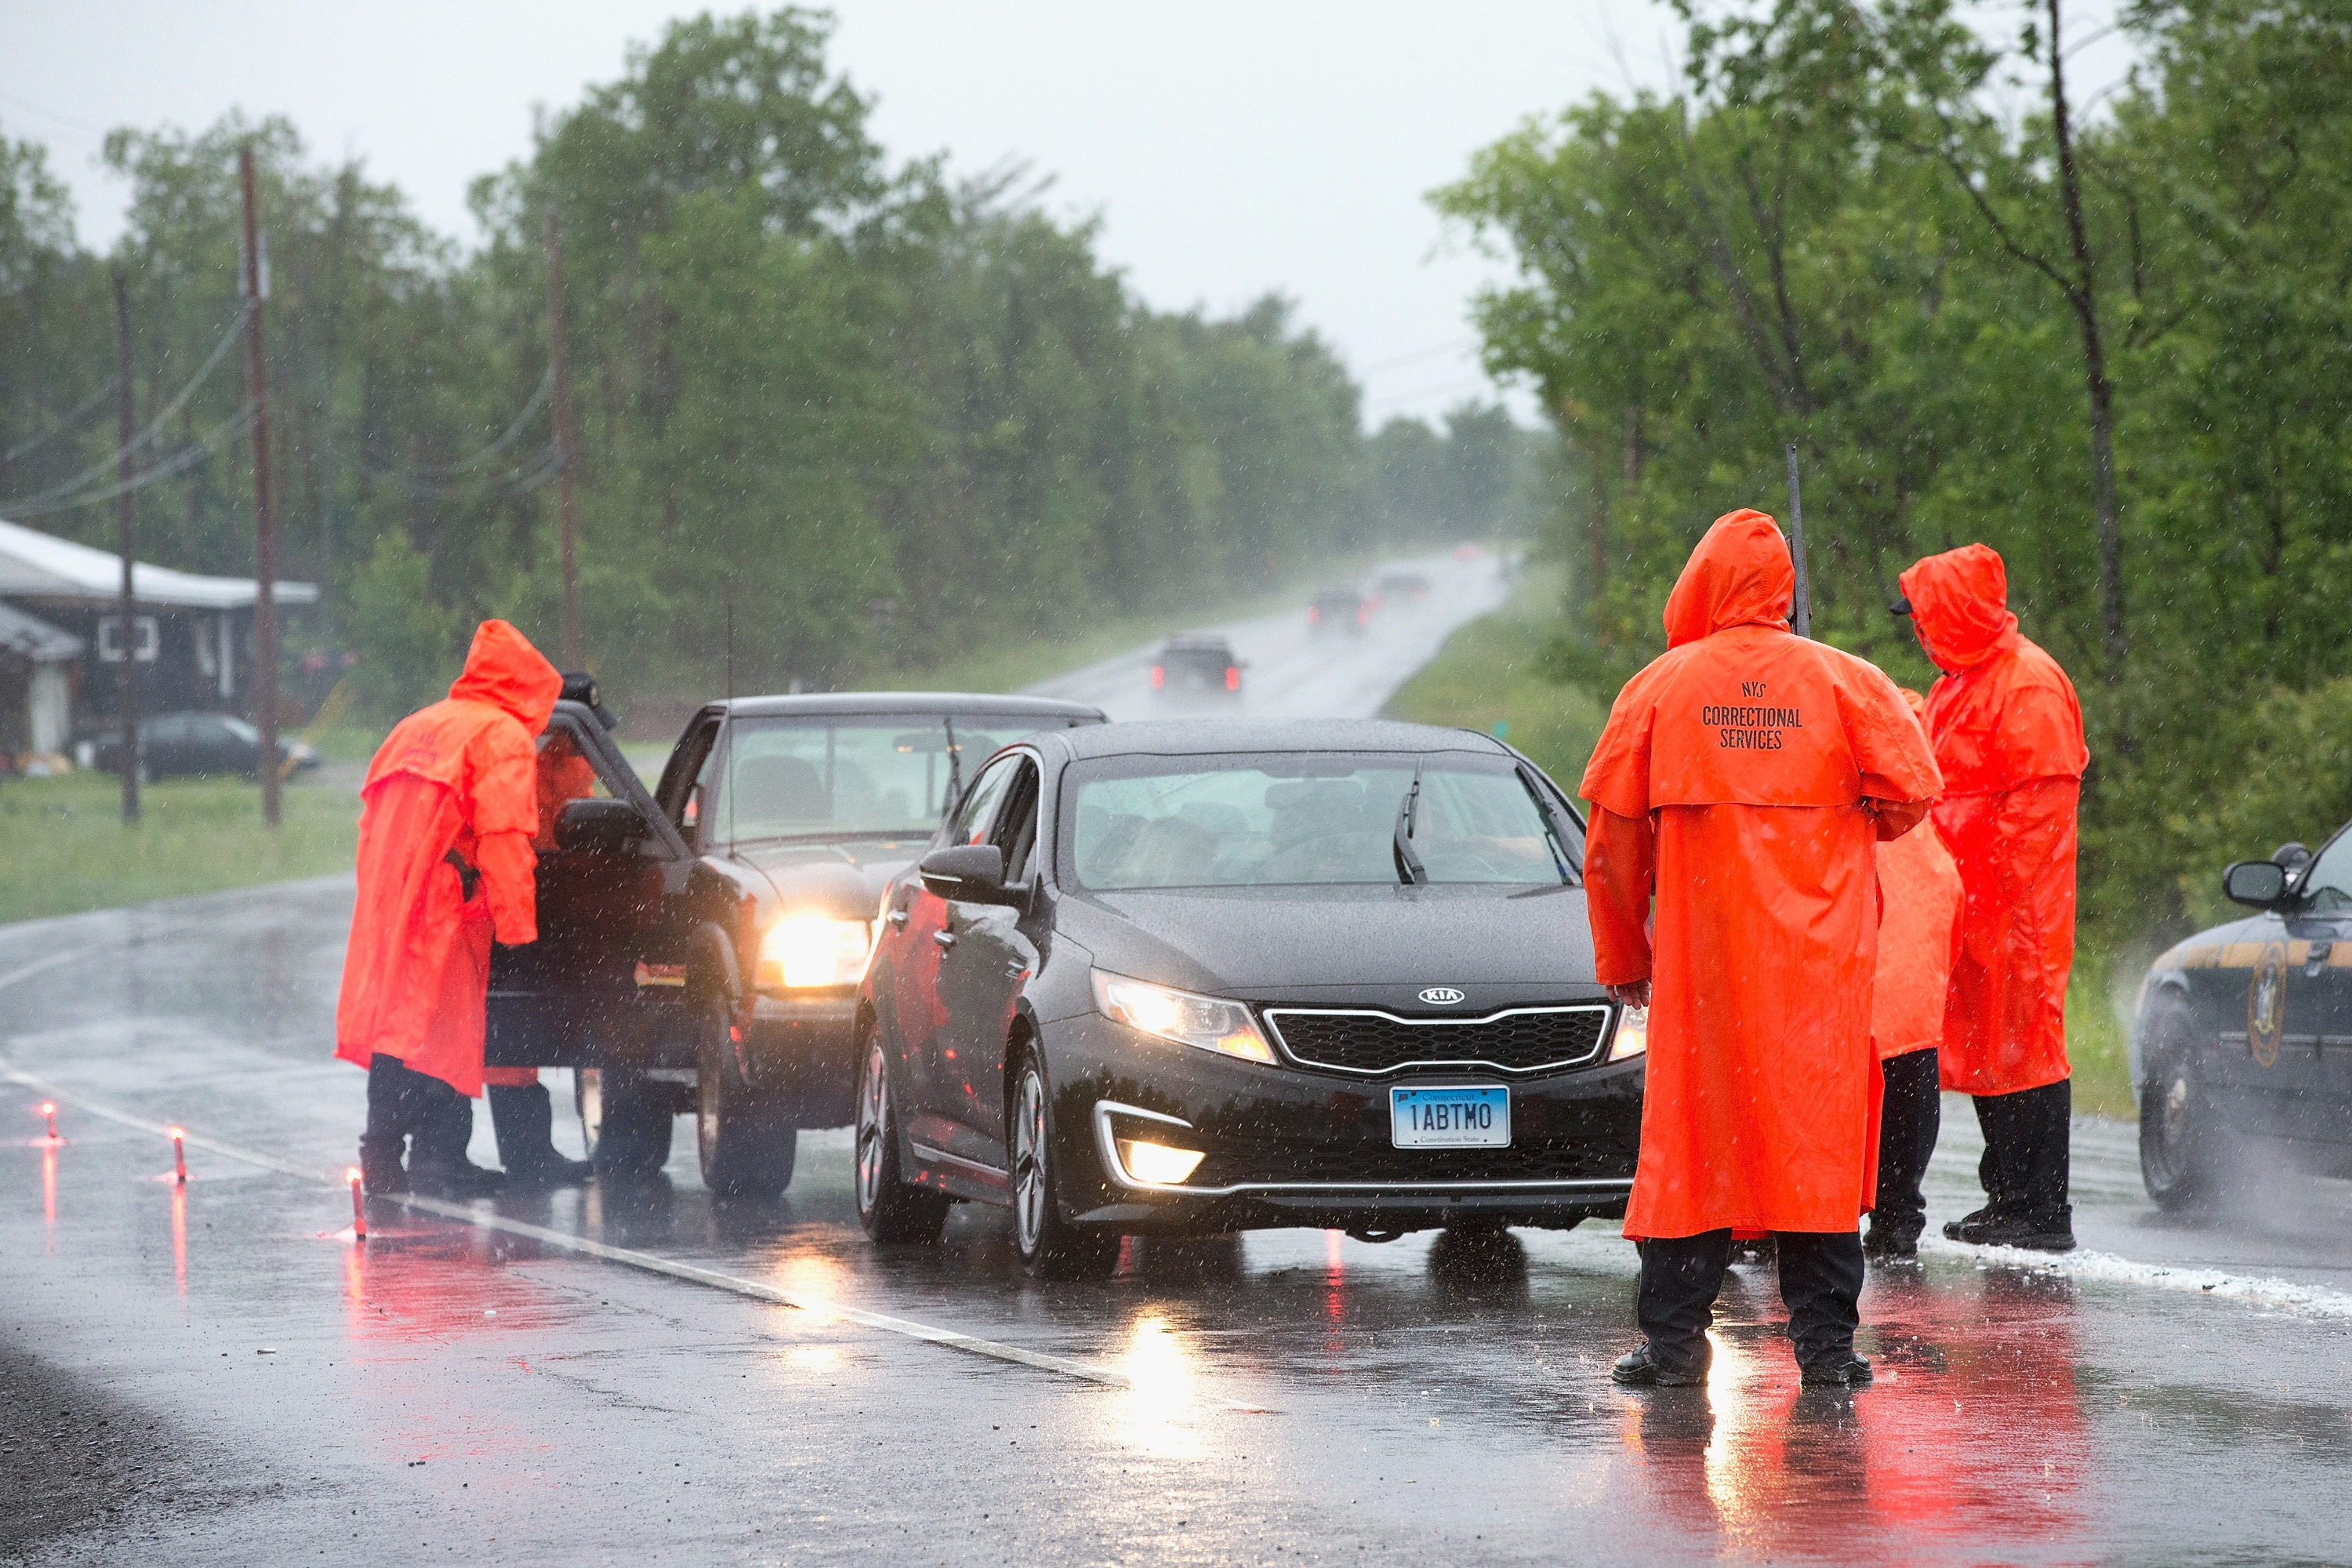 Correction officers search vehicles at a roadblock along Highway 30 near a wooded area where they believe escaped convict David Sweat may be hiding on June 28, 2015 near Malone, New York.  (Getty Images)